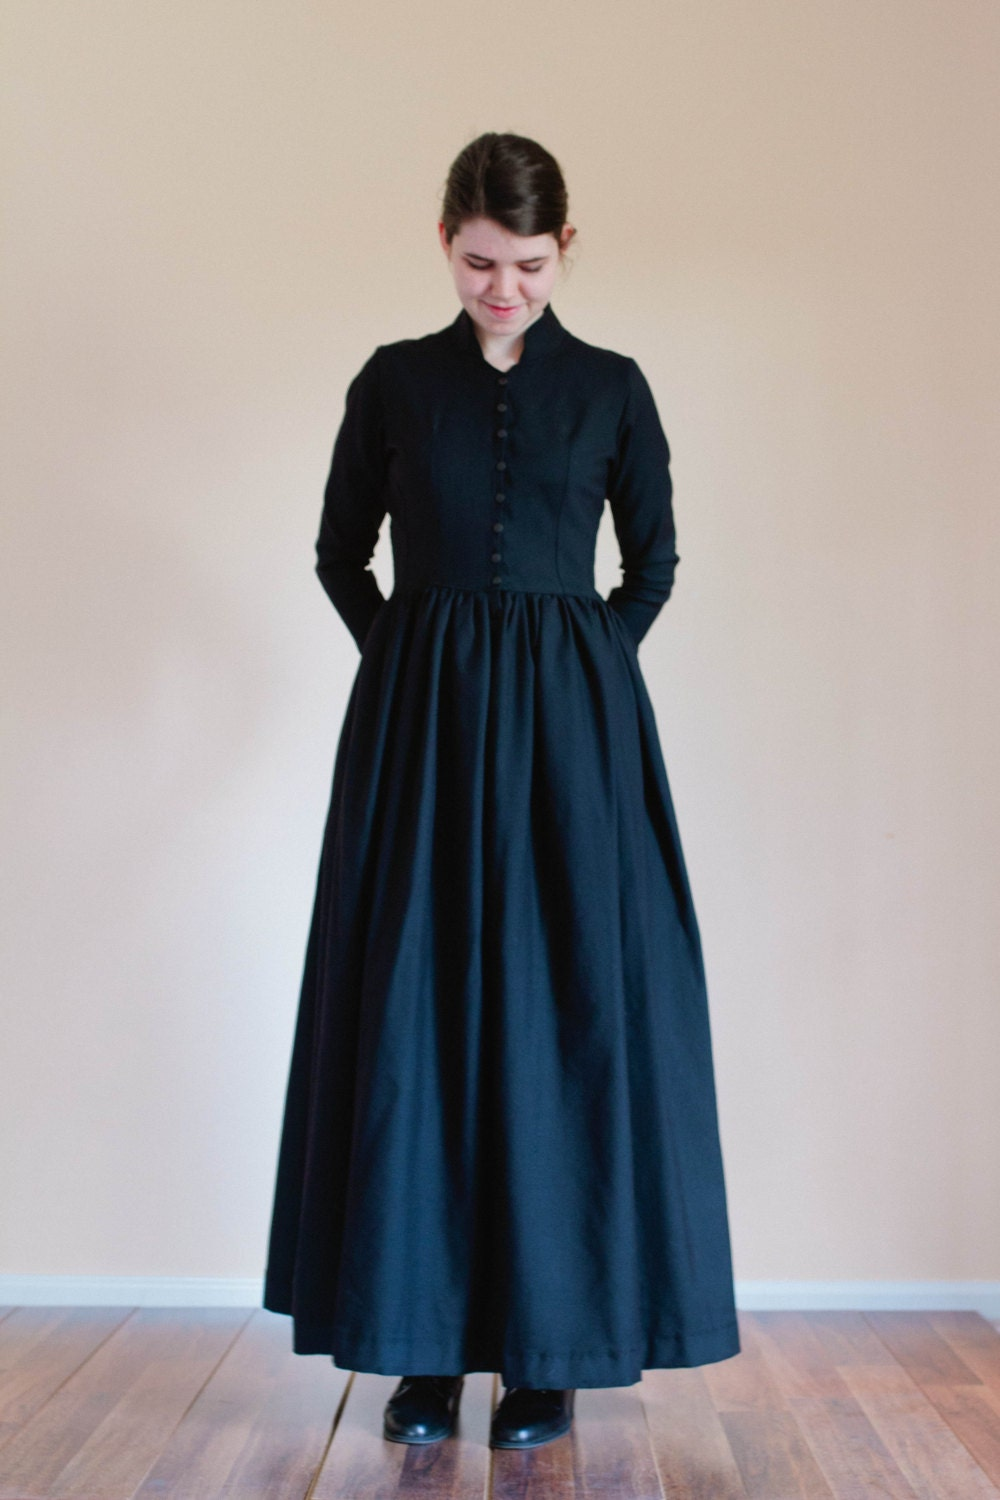 Modest clothing for christian women photo